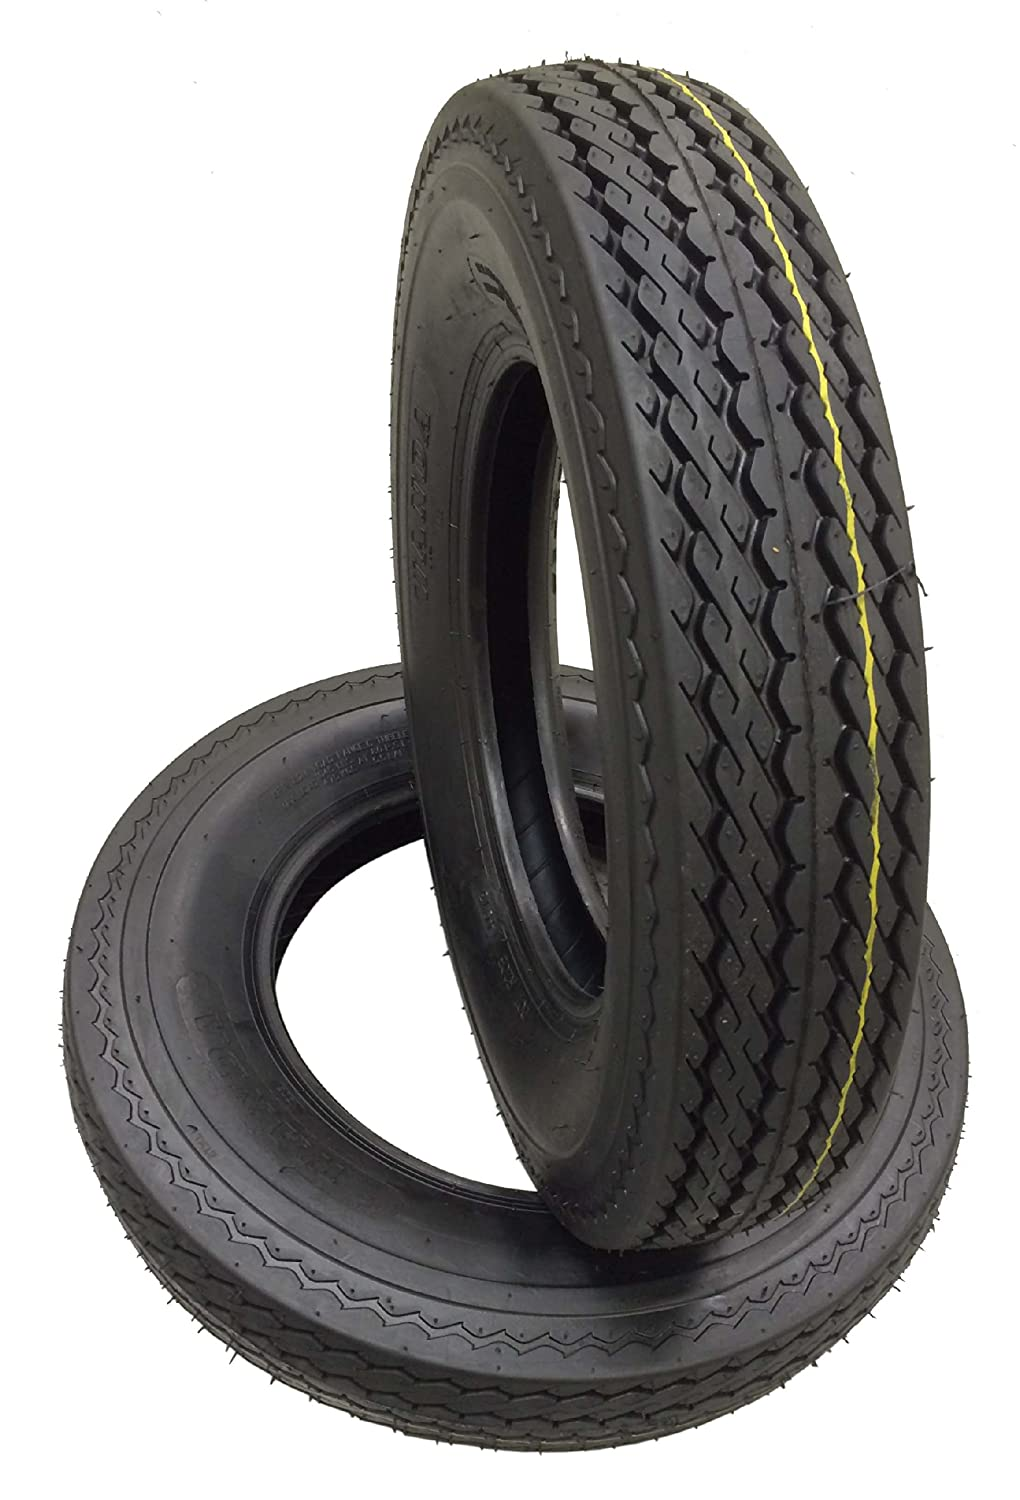 Amazon Com 2 New Wanda Boat Trailer Tires 4 80 12 6pr Load Range C